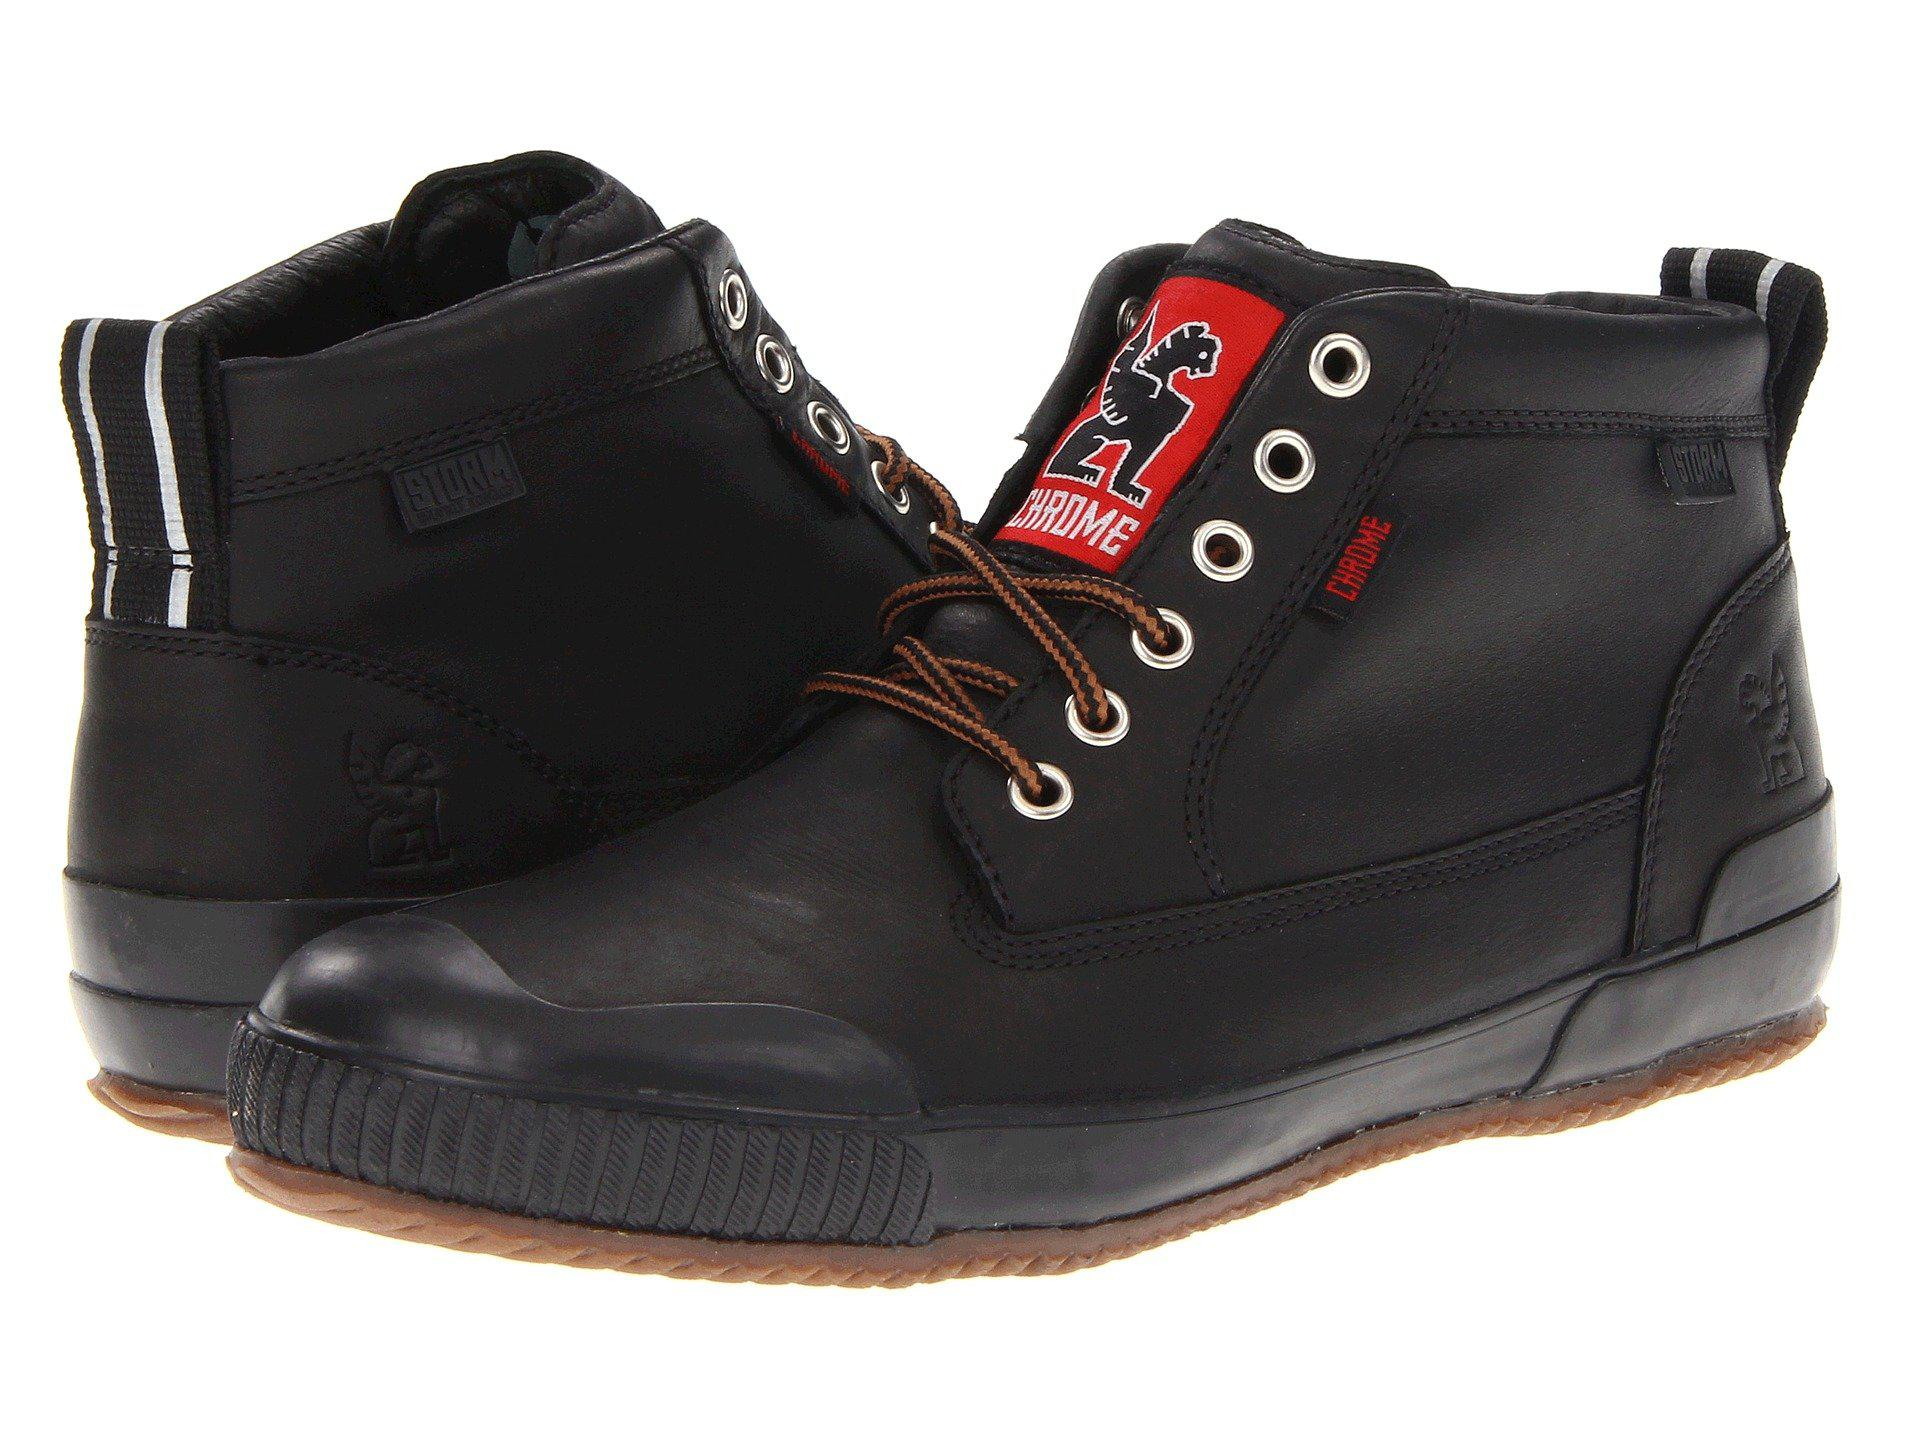 Lyst - Chrome Industries Storm 415 Workboot (black) Cycling Shoes in ... 520e83366b7